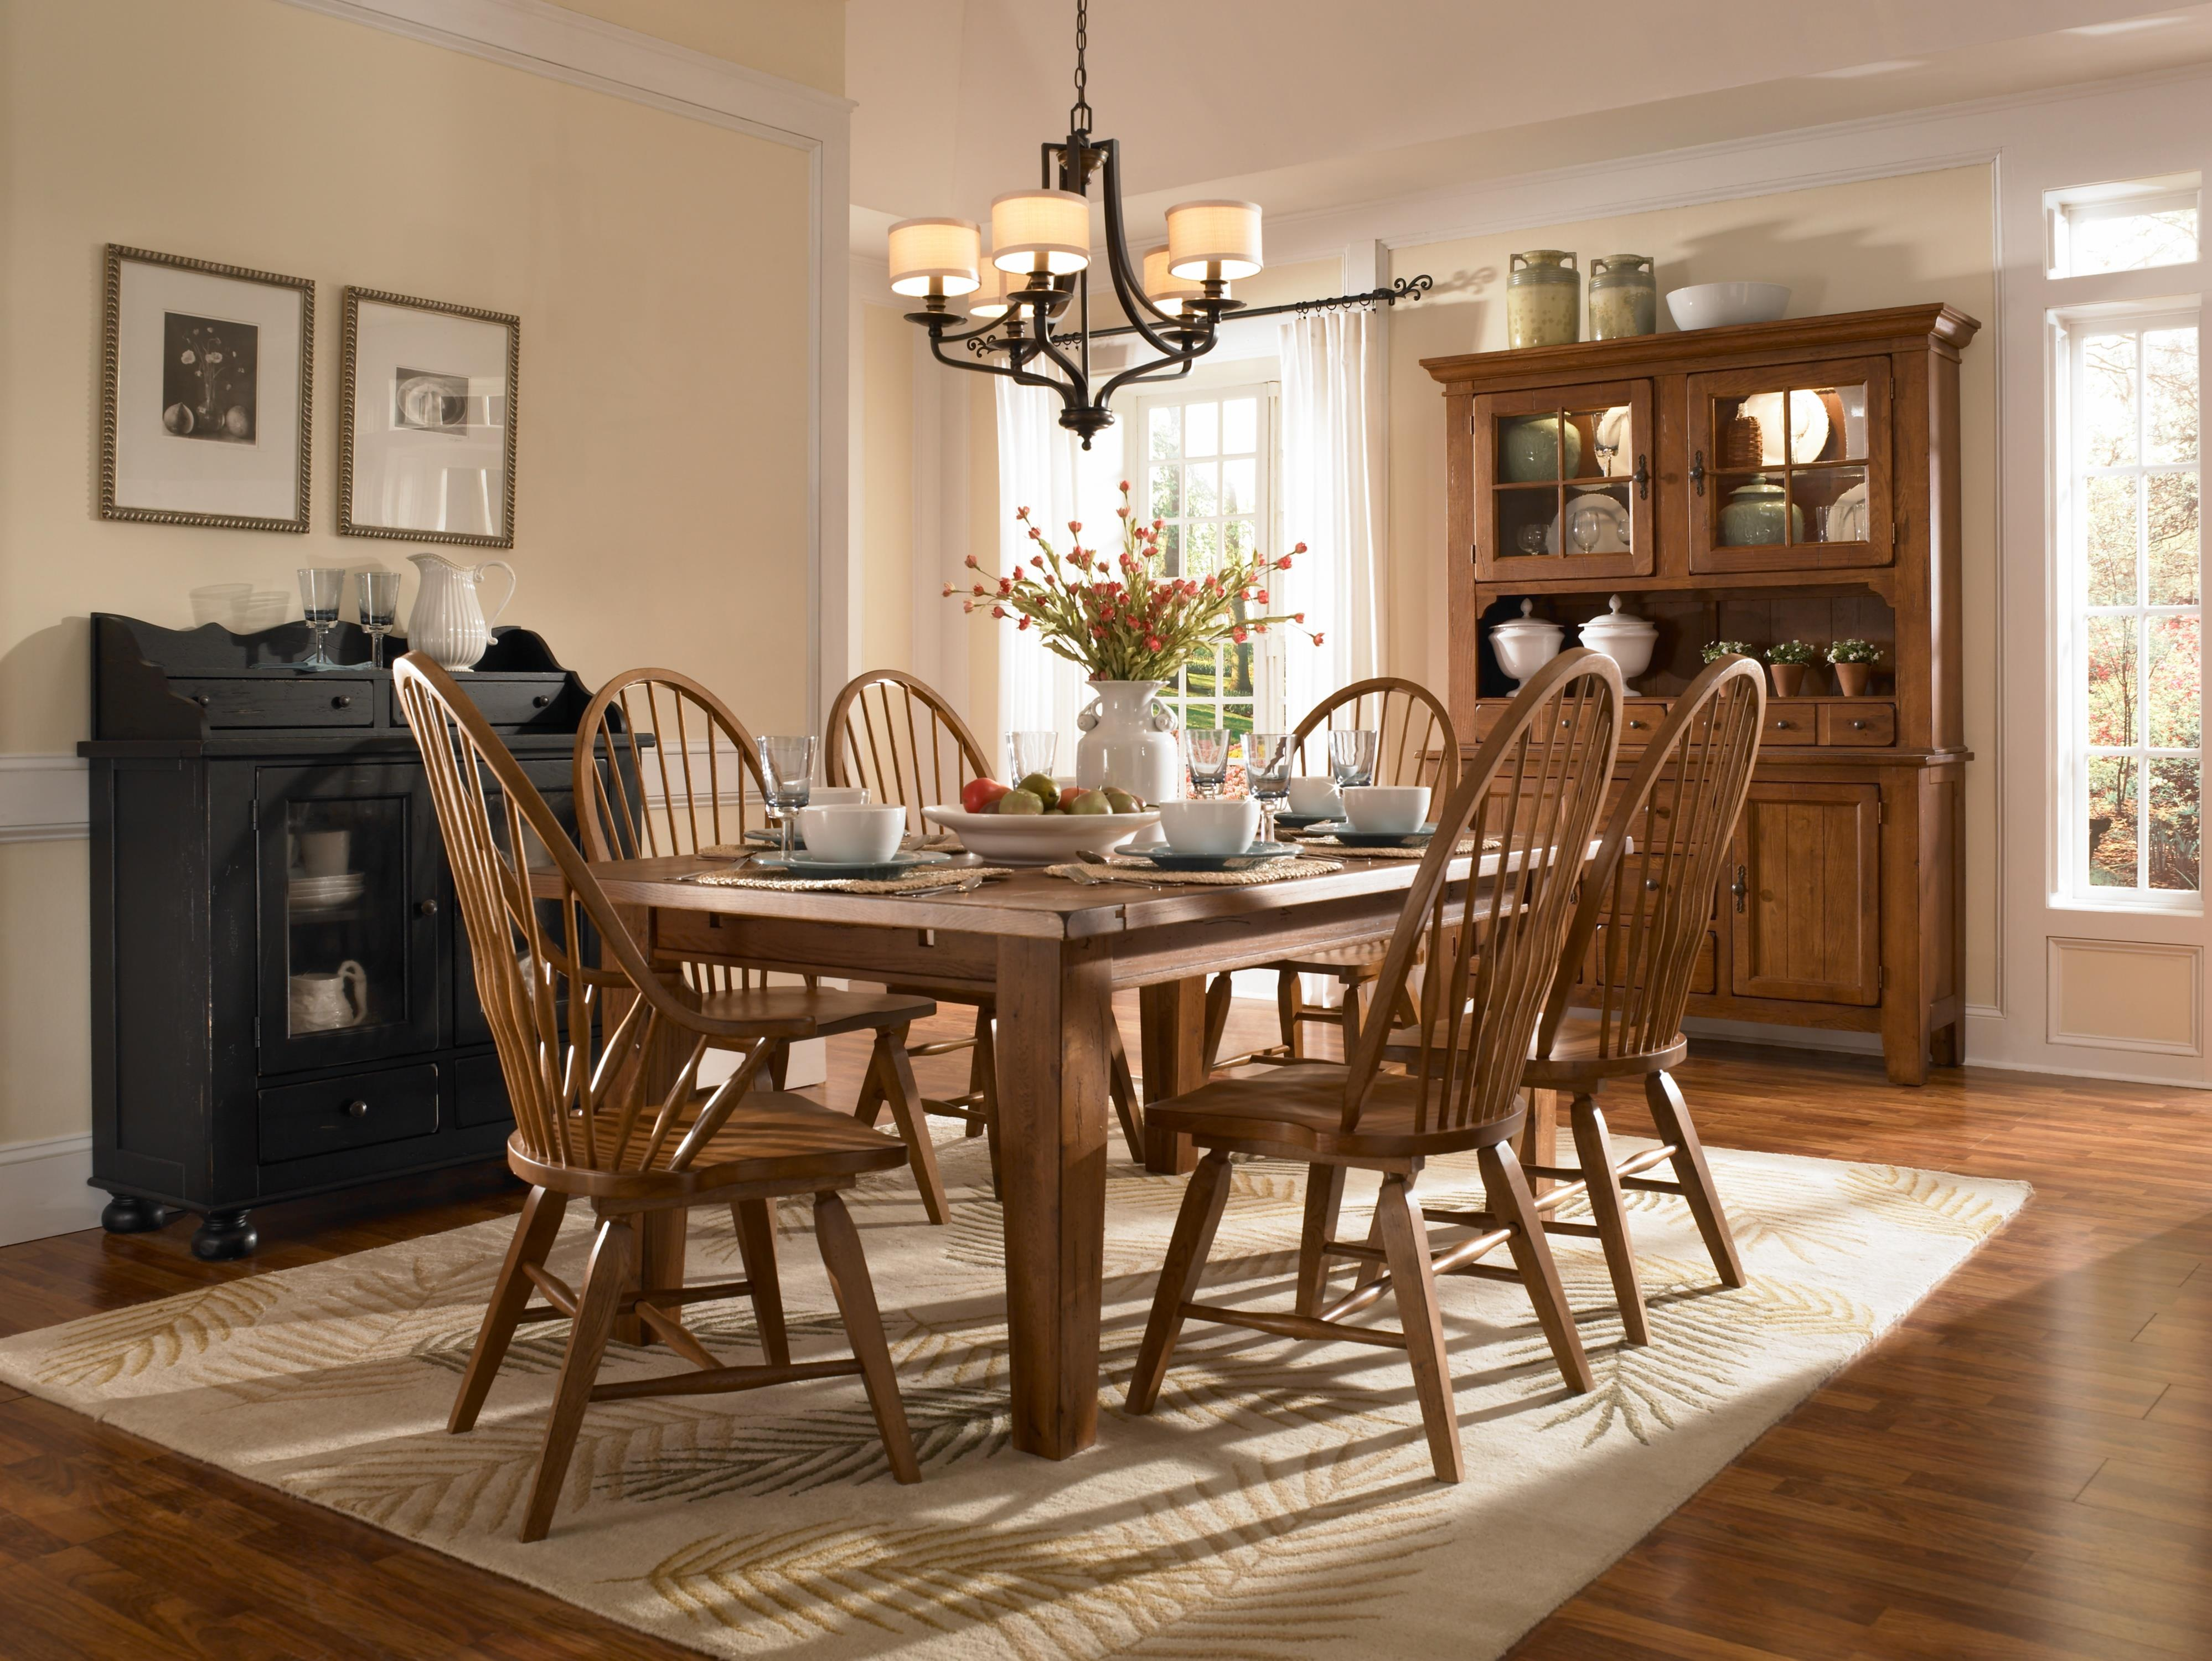 Broyhill Furniture Attic Heirlooms Counter Height 7 Piece Dining Set ...